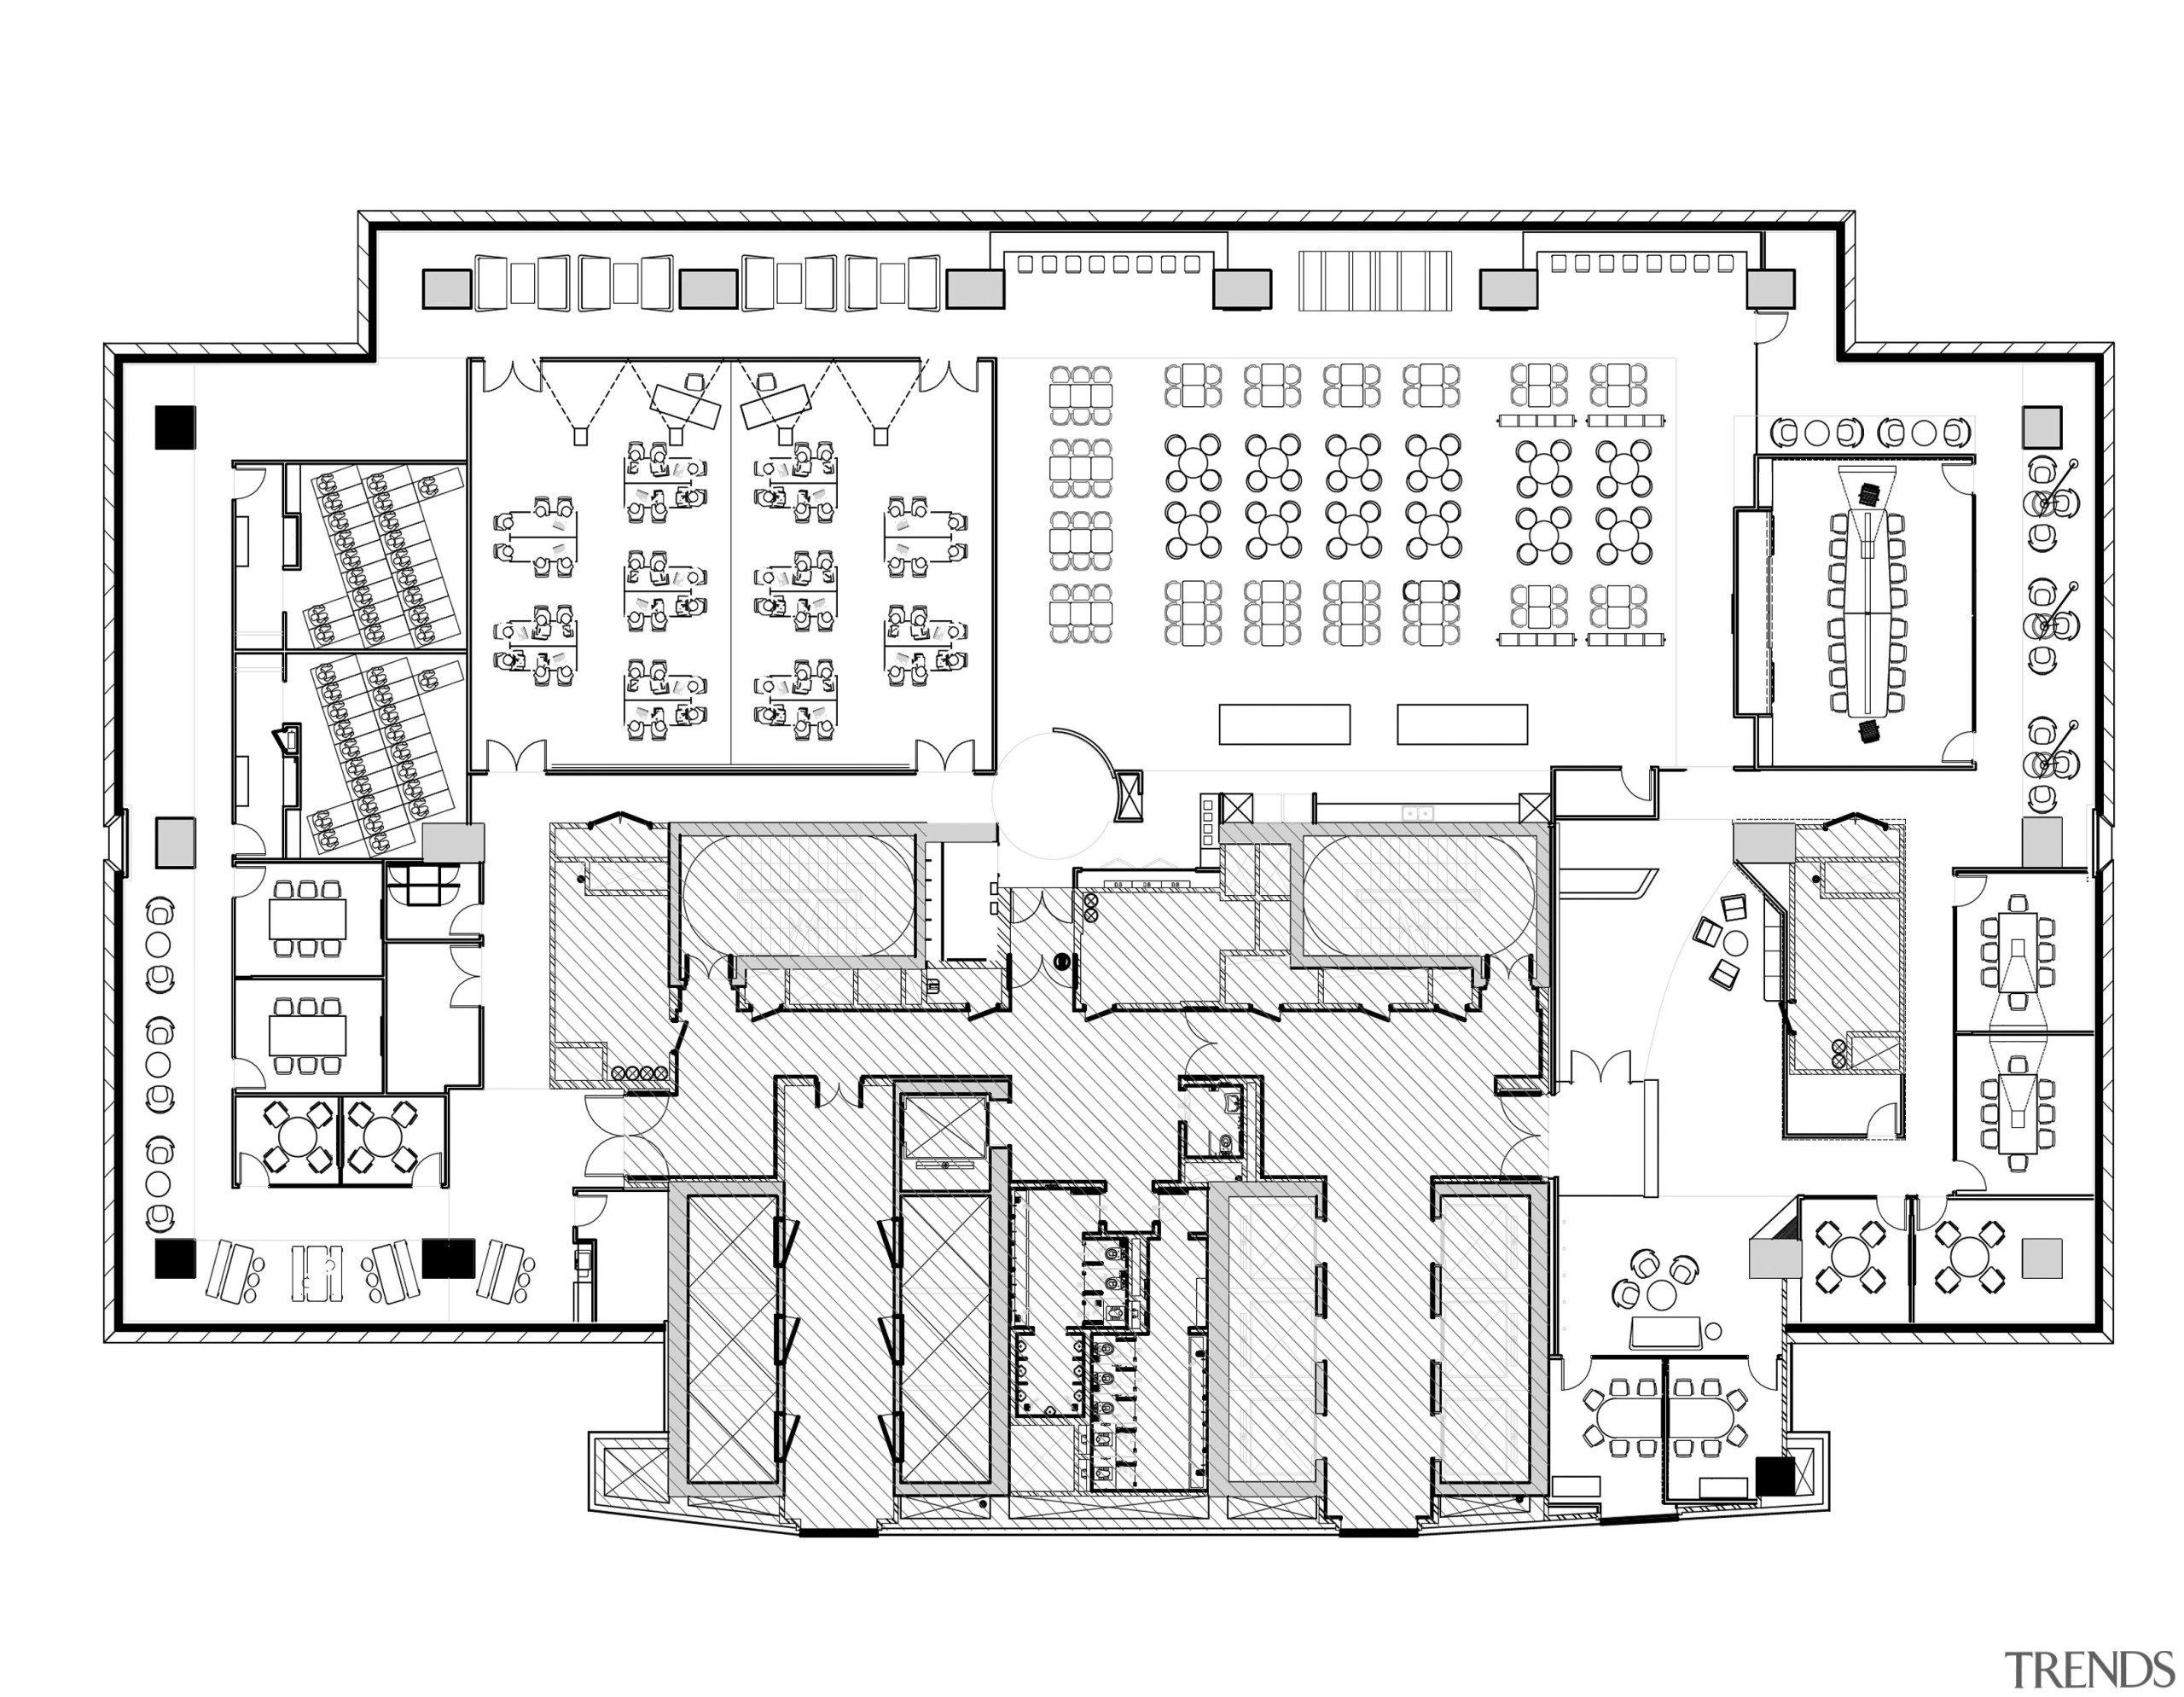 This Partial Plan Of A Back Office Floor Shows The